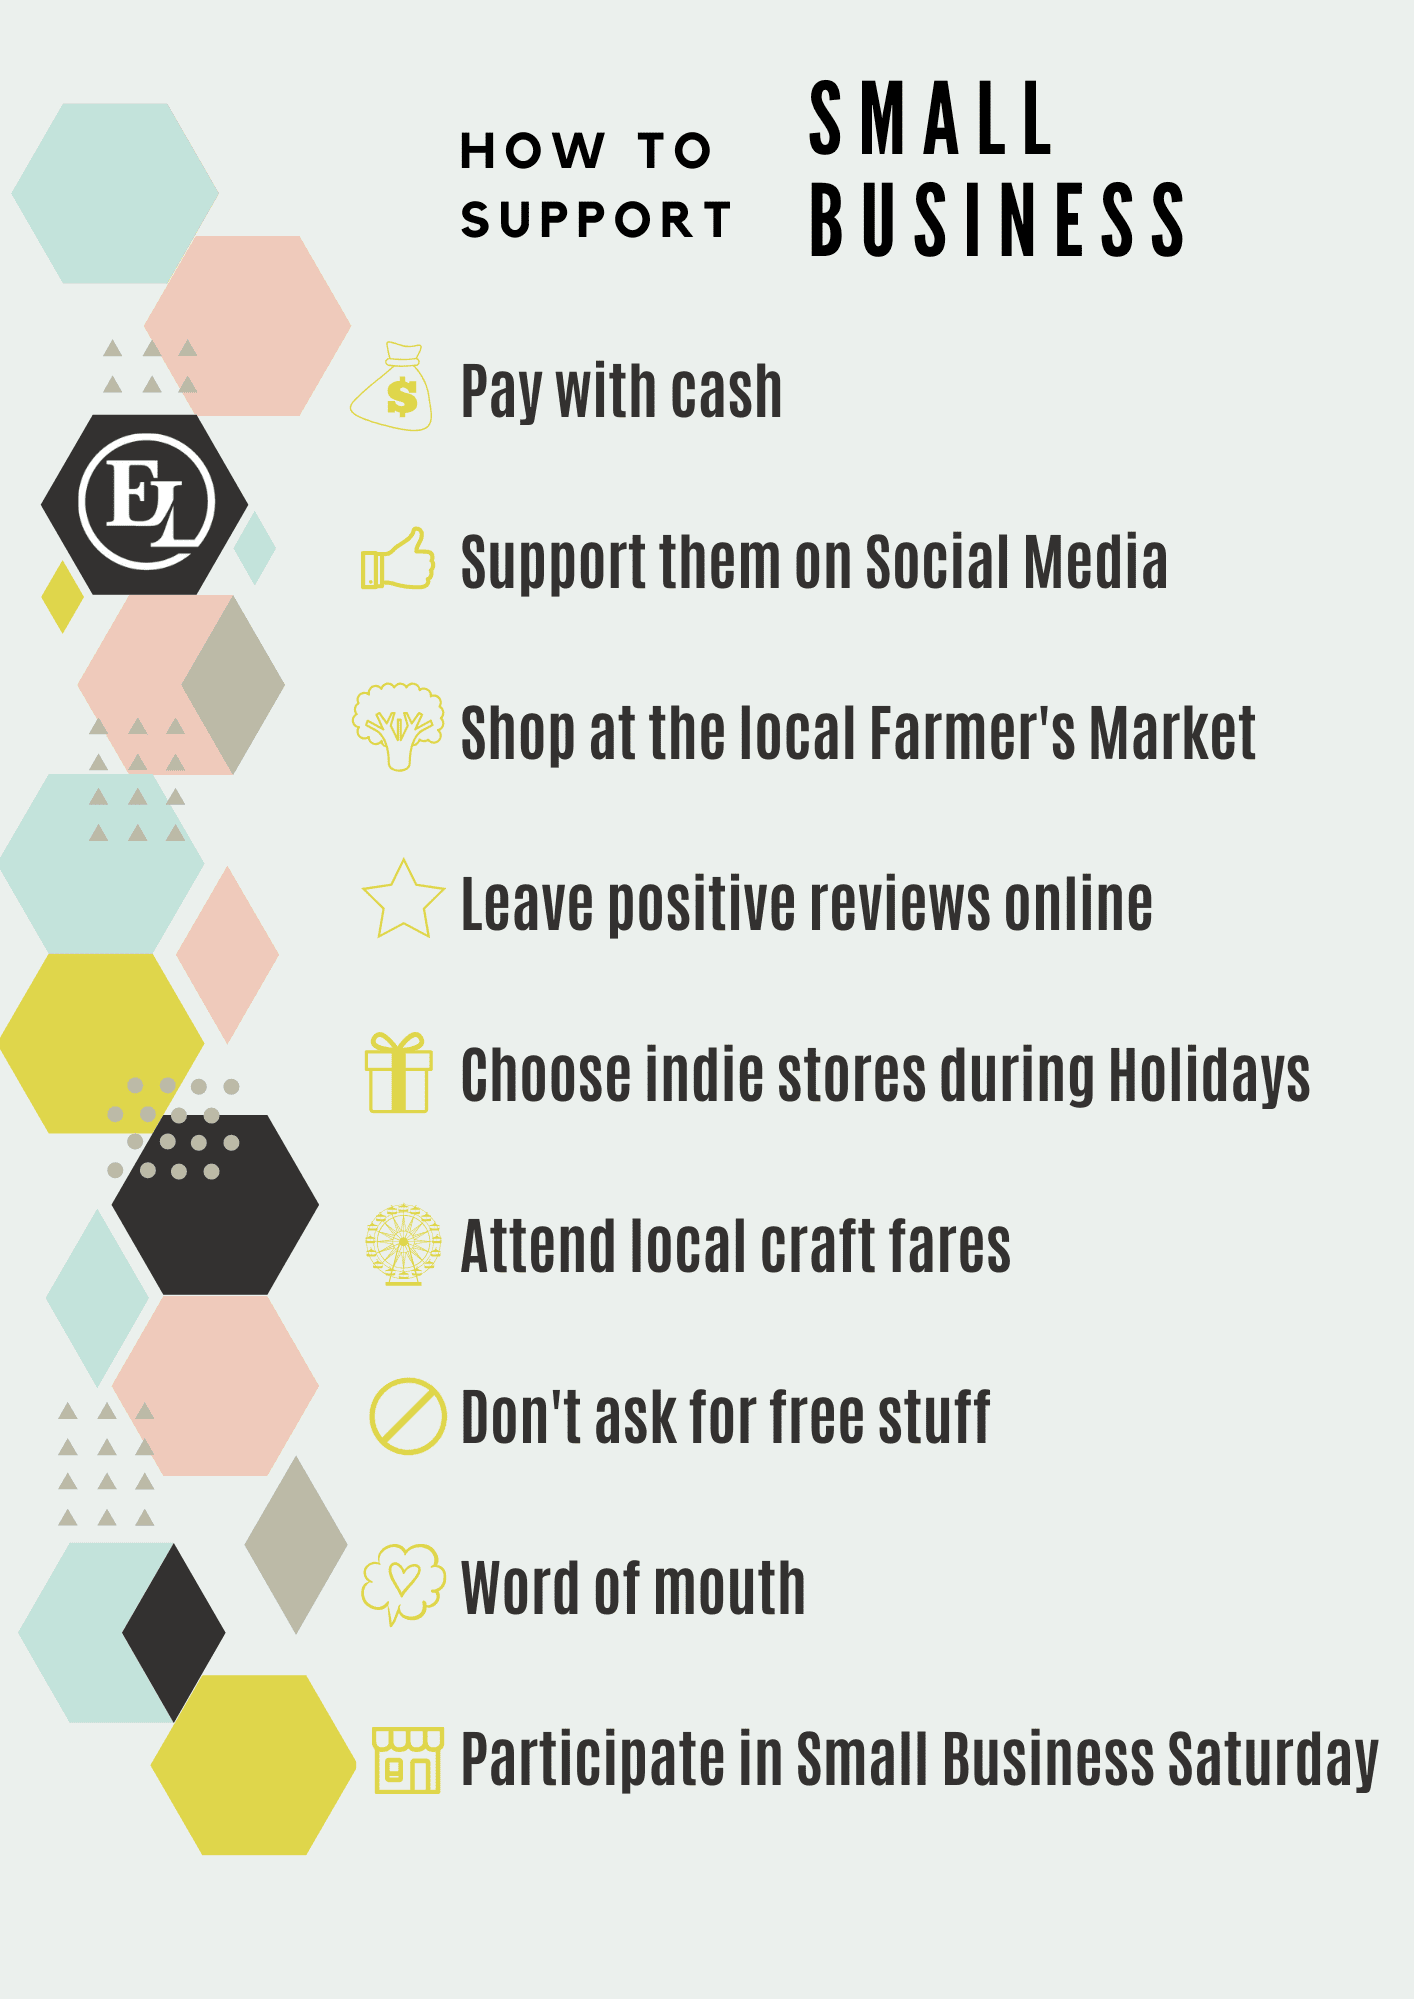 How to support small businesses